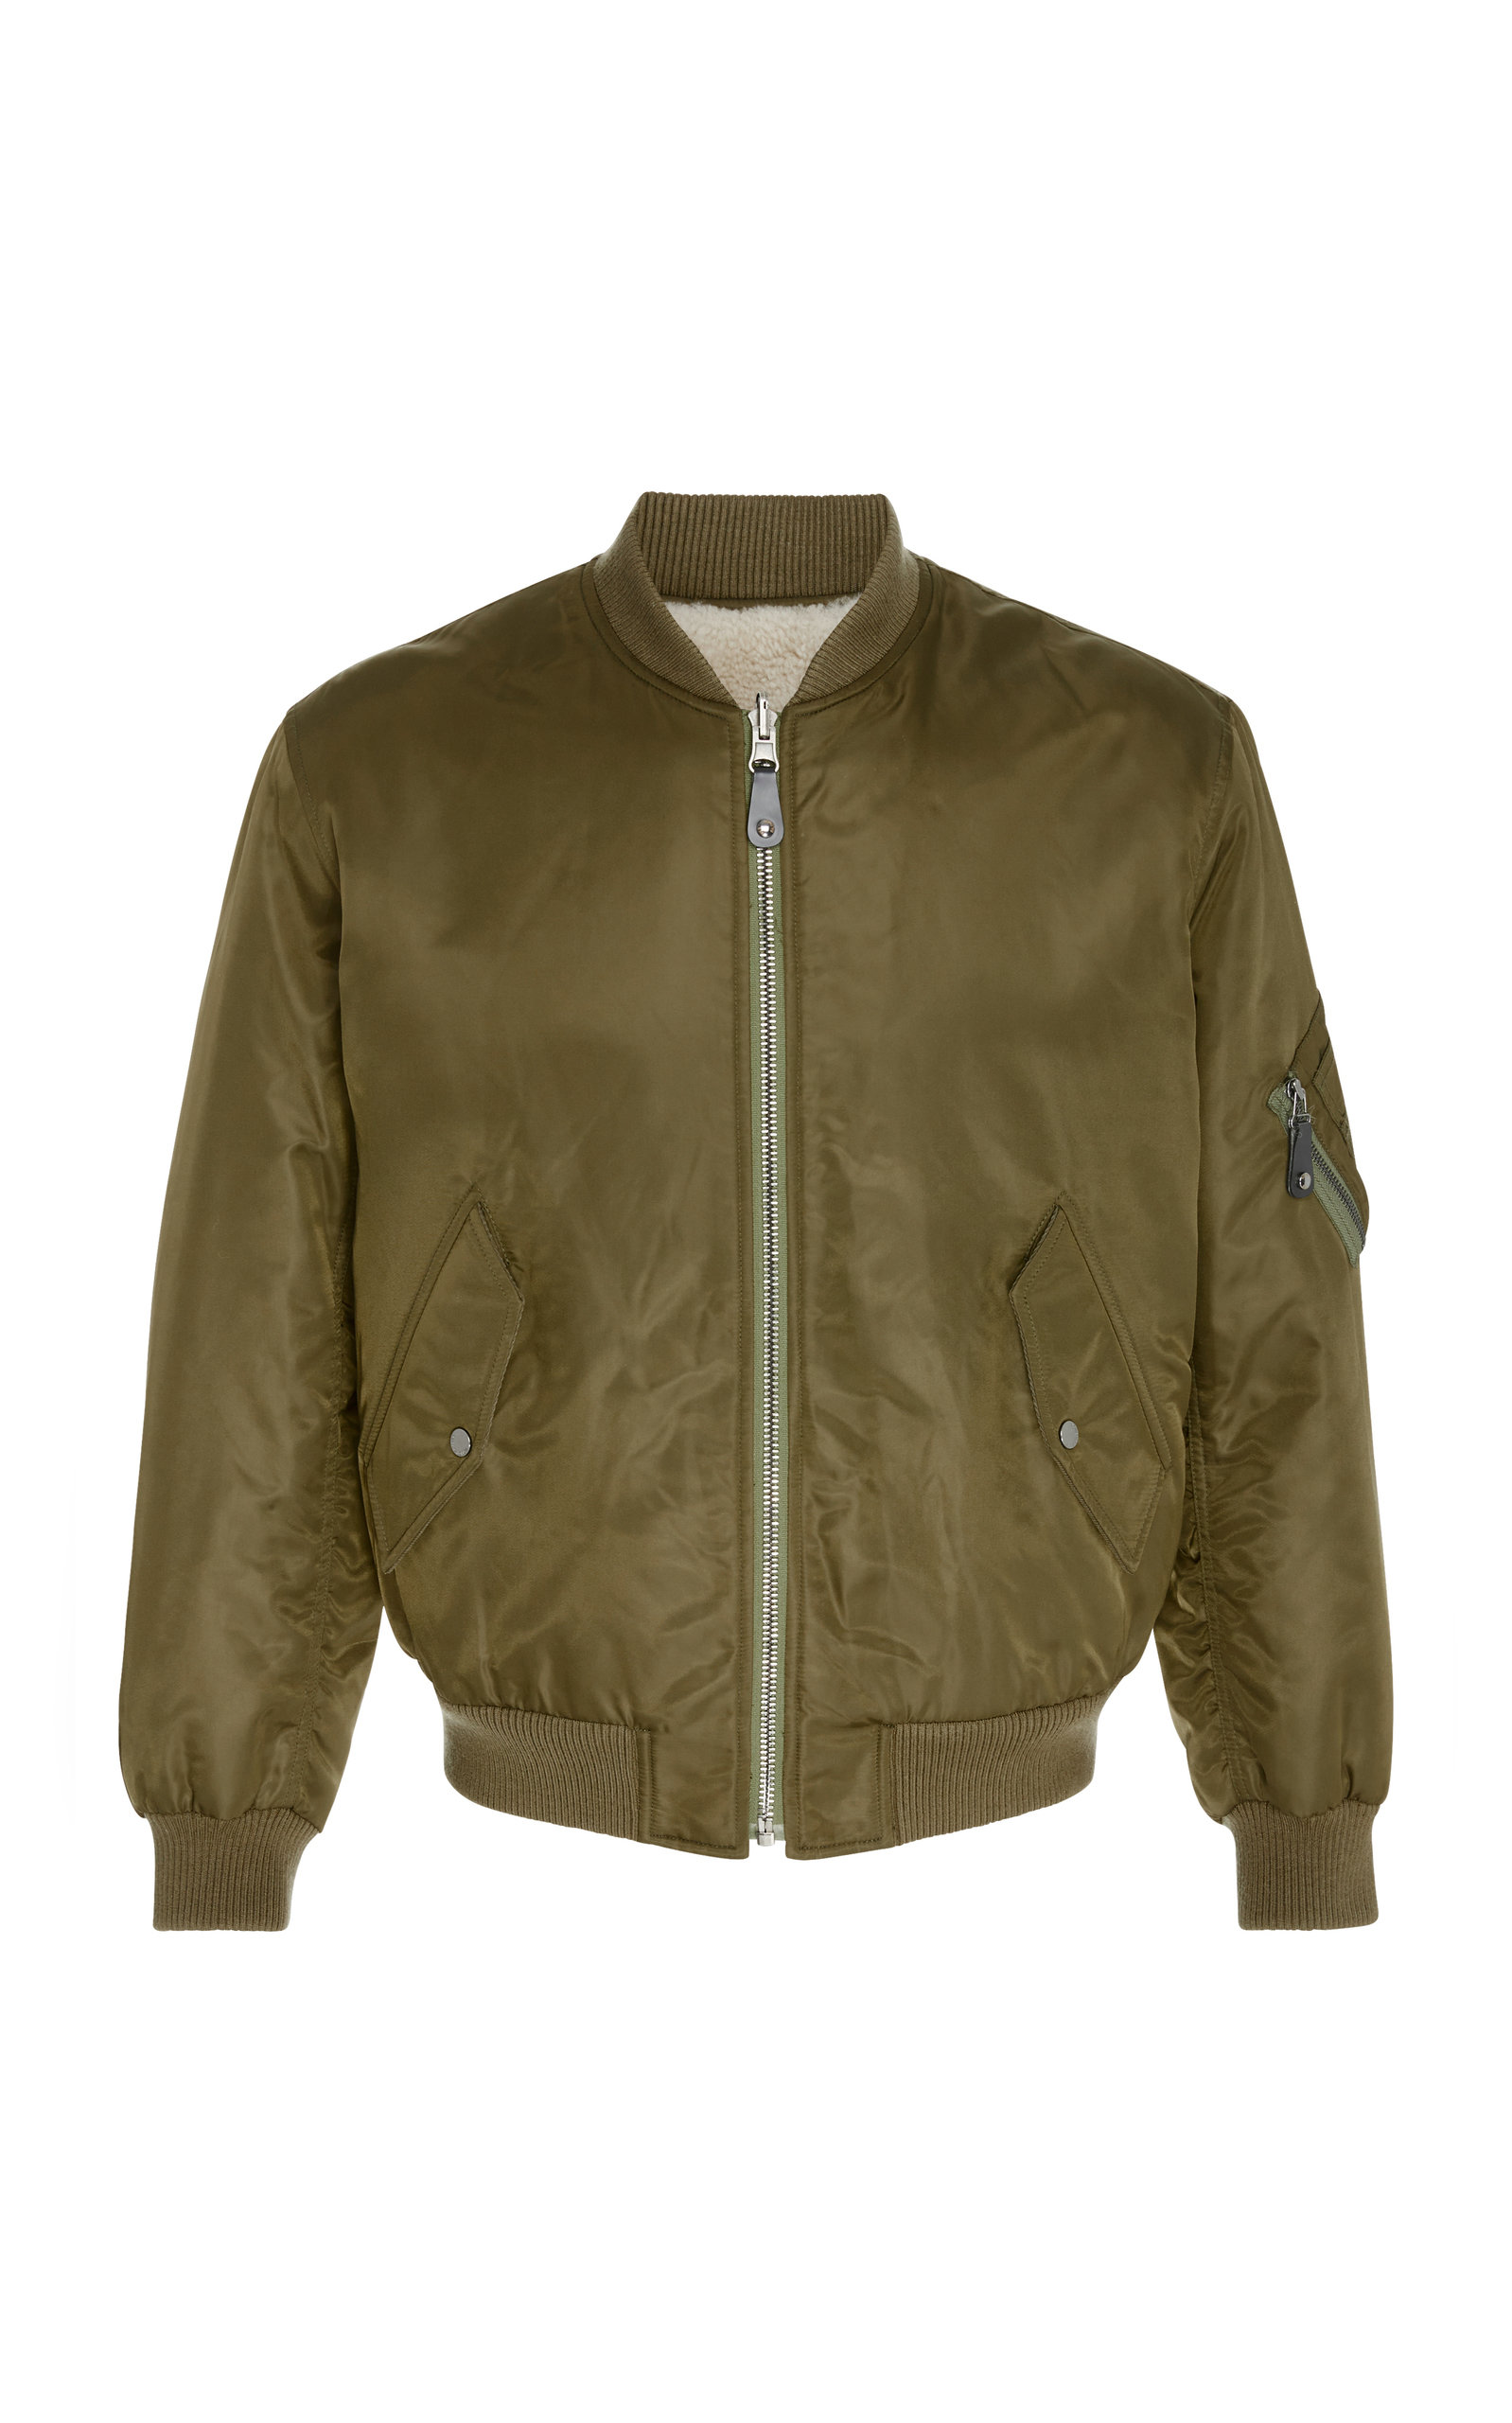 Jacket Salomon Atuwu Bomber Yves Tech Shearling OUxwfUaq4